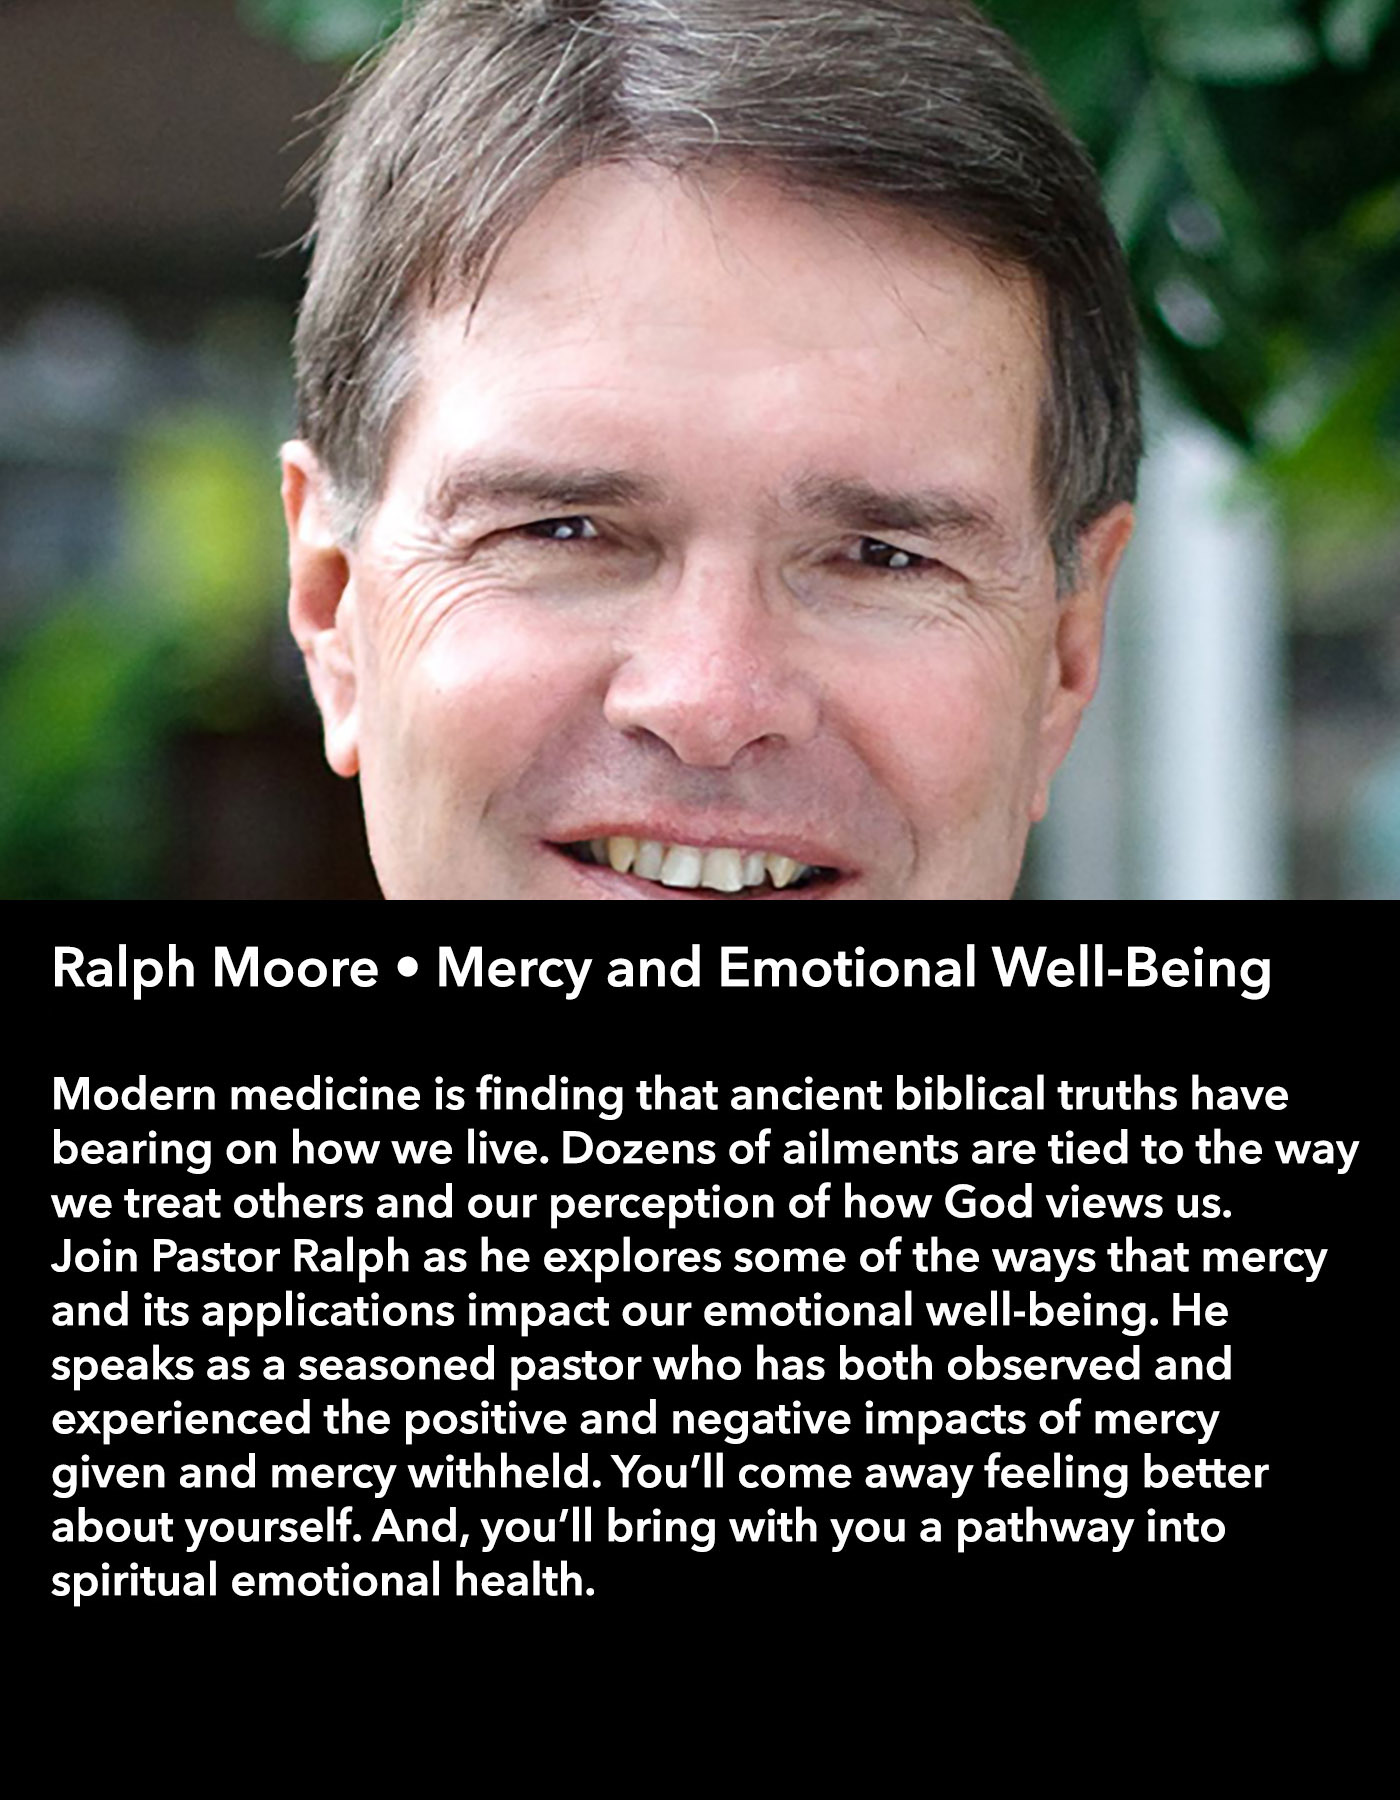 Ralph Moore • Mercy and Emotional Well-Being • Saturday Morning, March 18 • 10:30 – 11:45 am